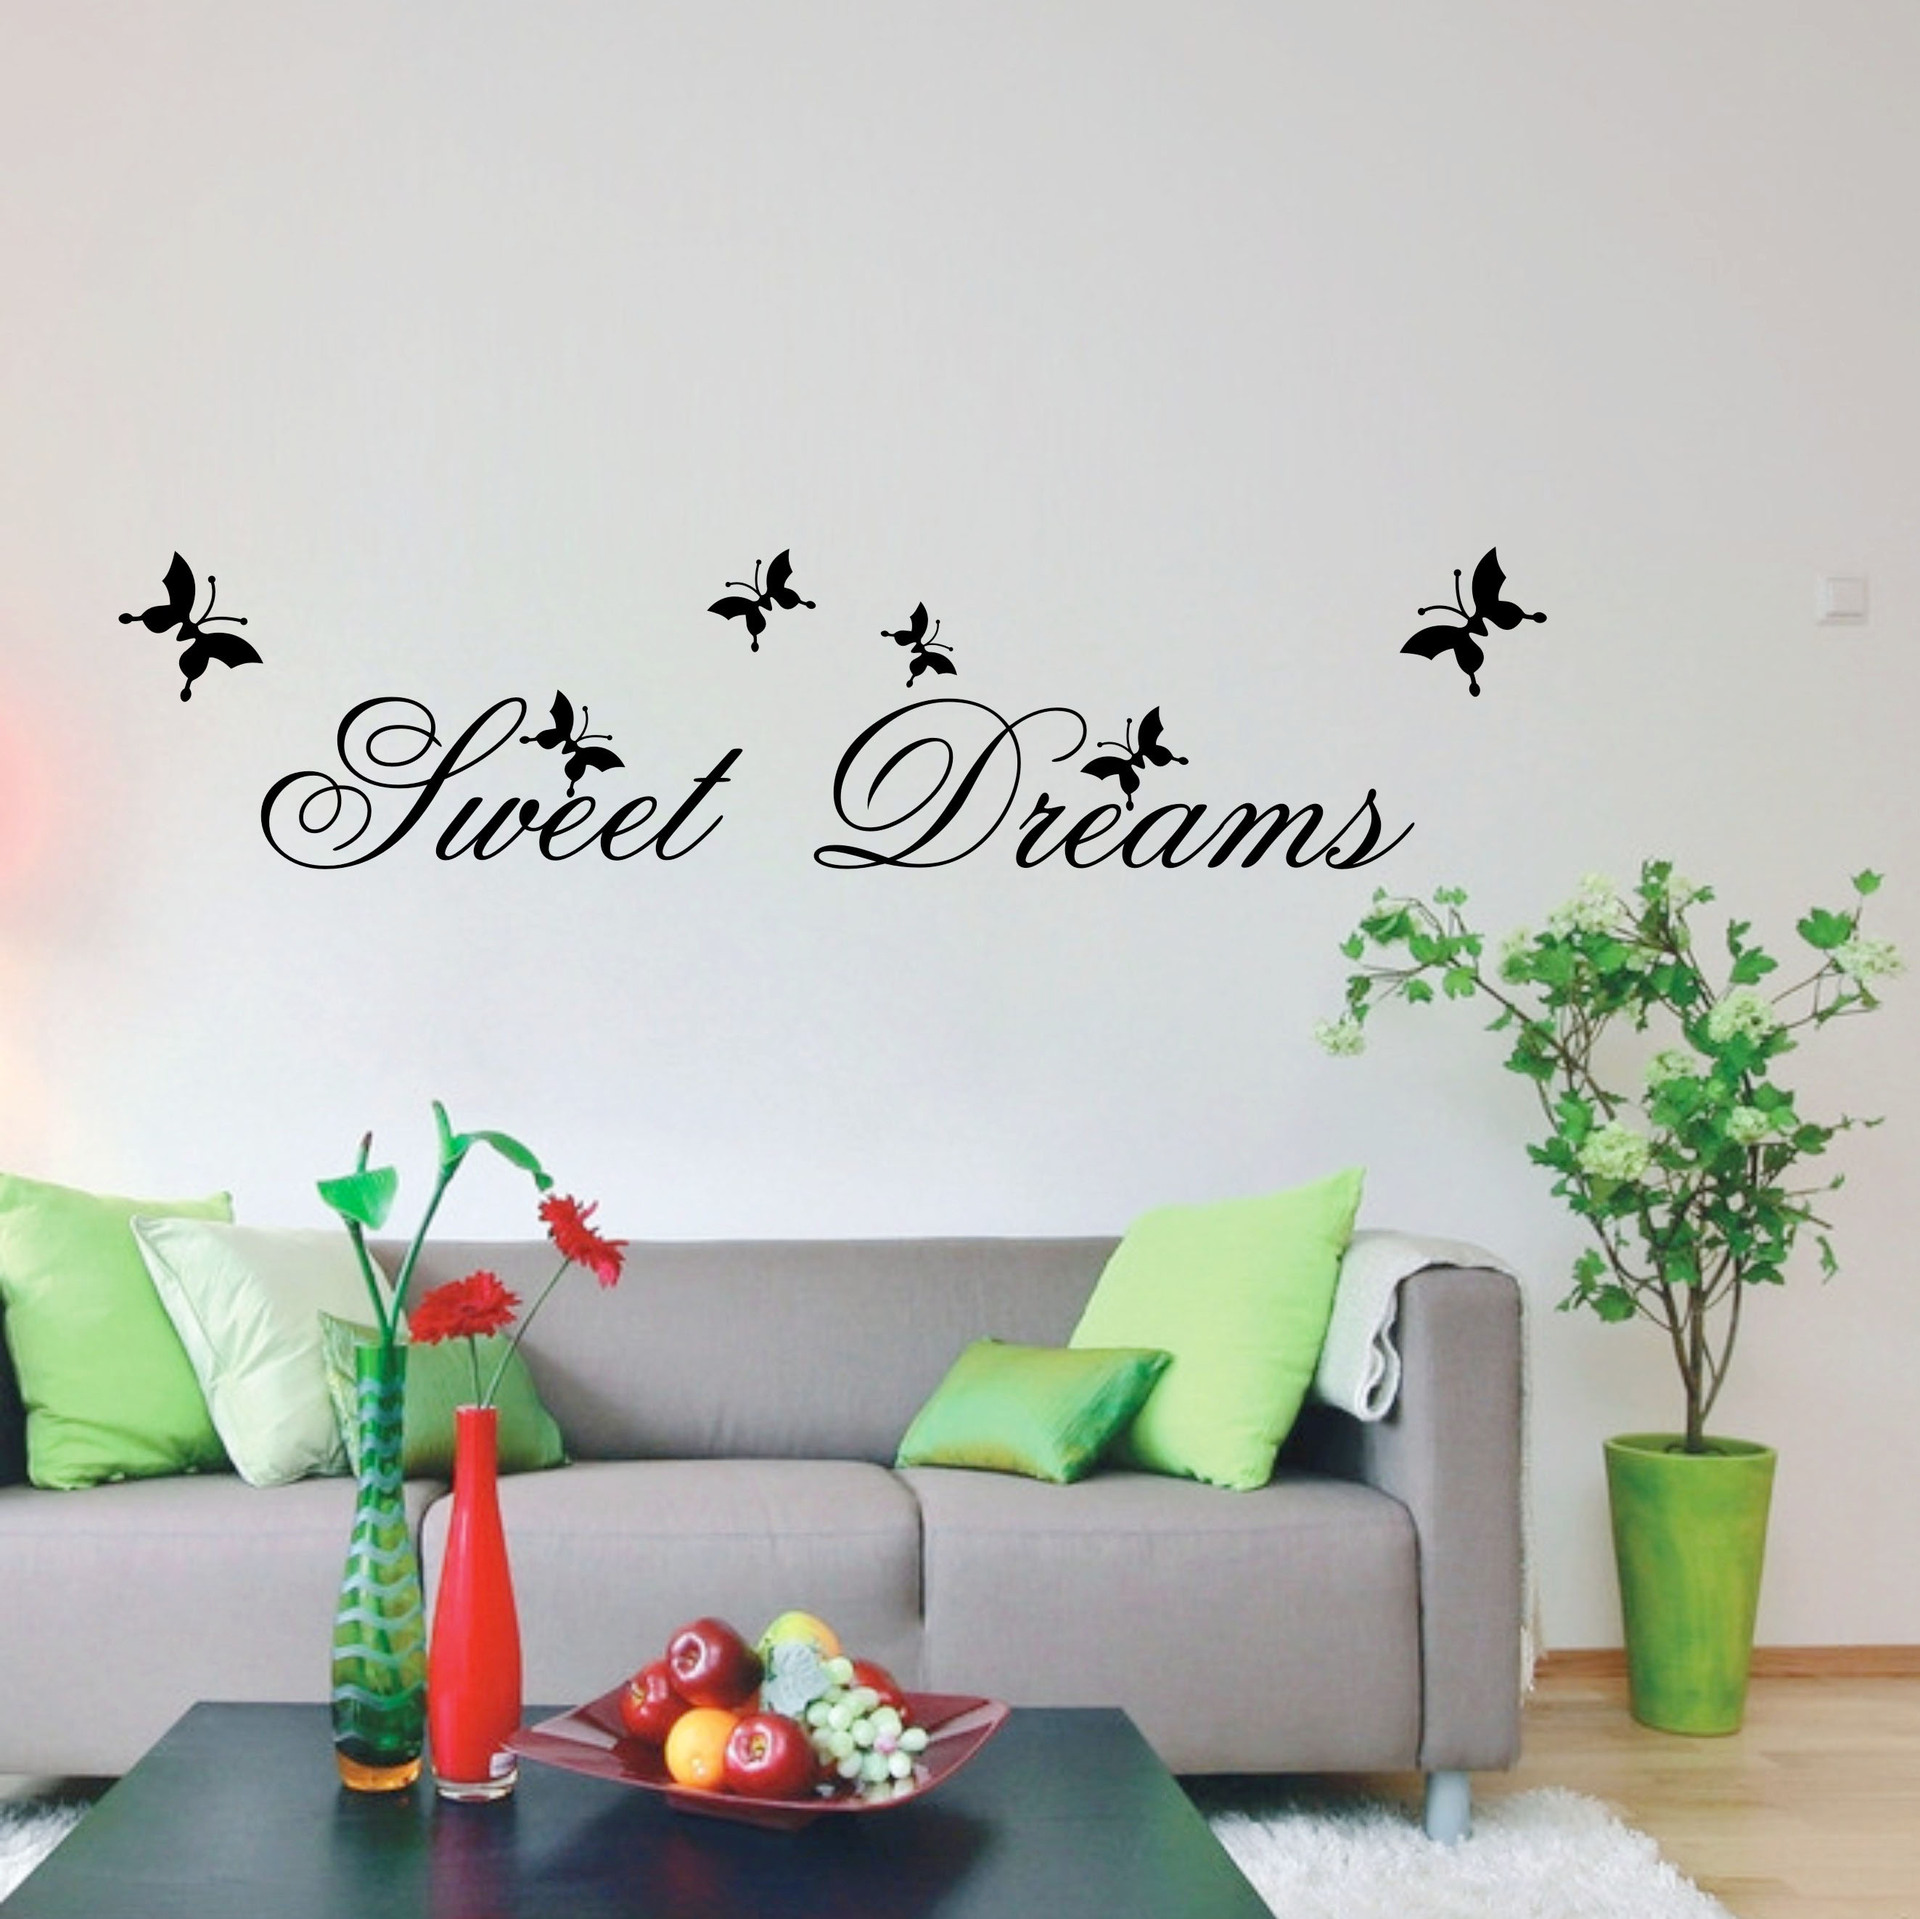 spring view scenery sweet dreams butterfly home decor art mural wall